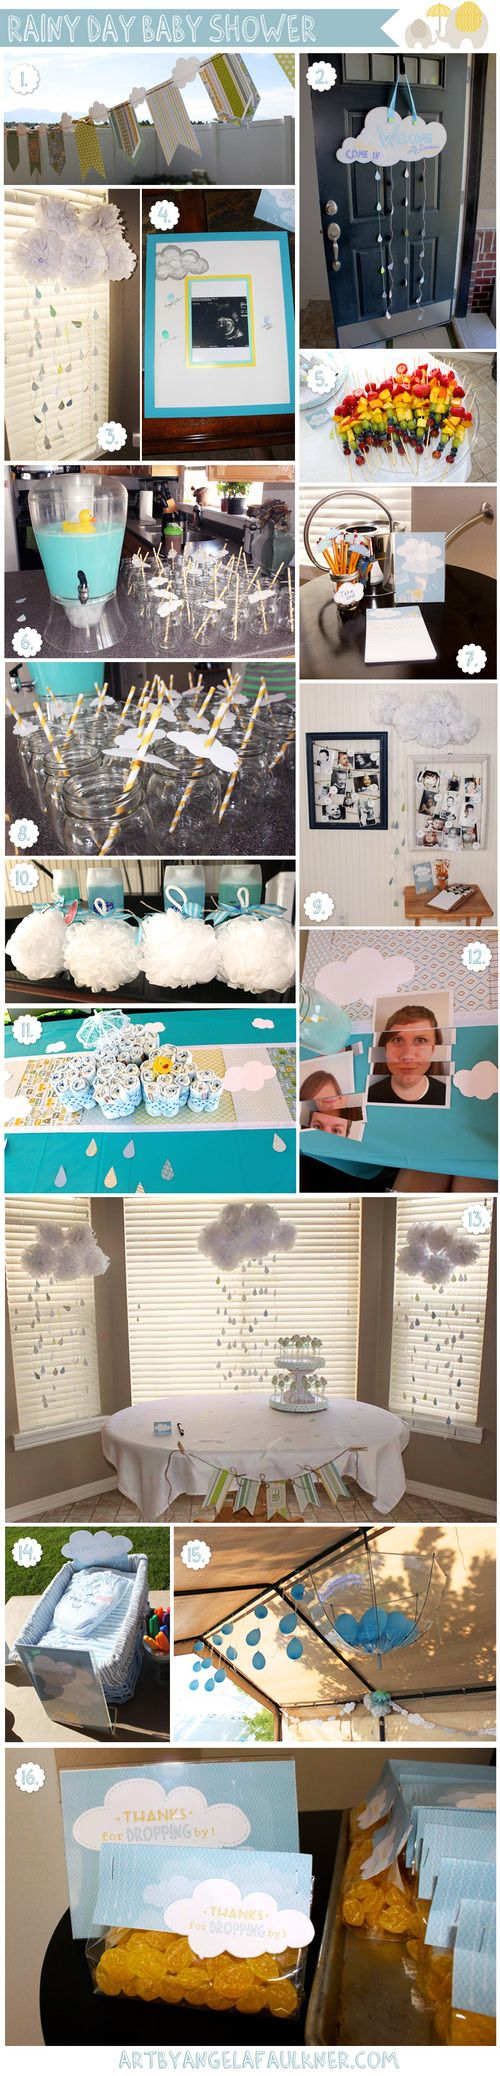 Rainy Day Baby Shower with step-by-step instructions.  #freeprintables #babyshower #ideas